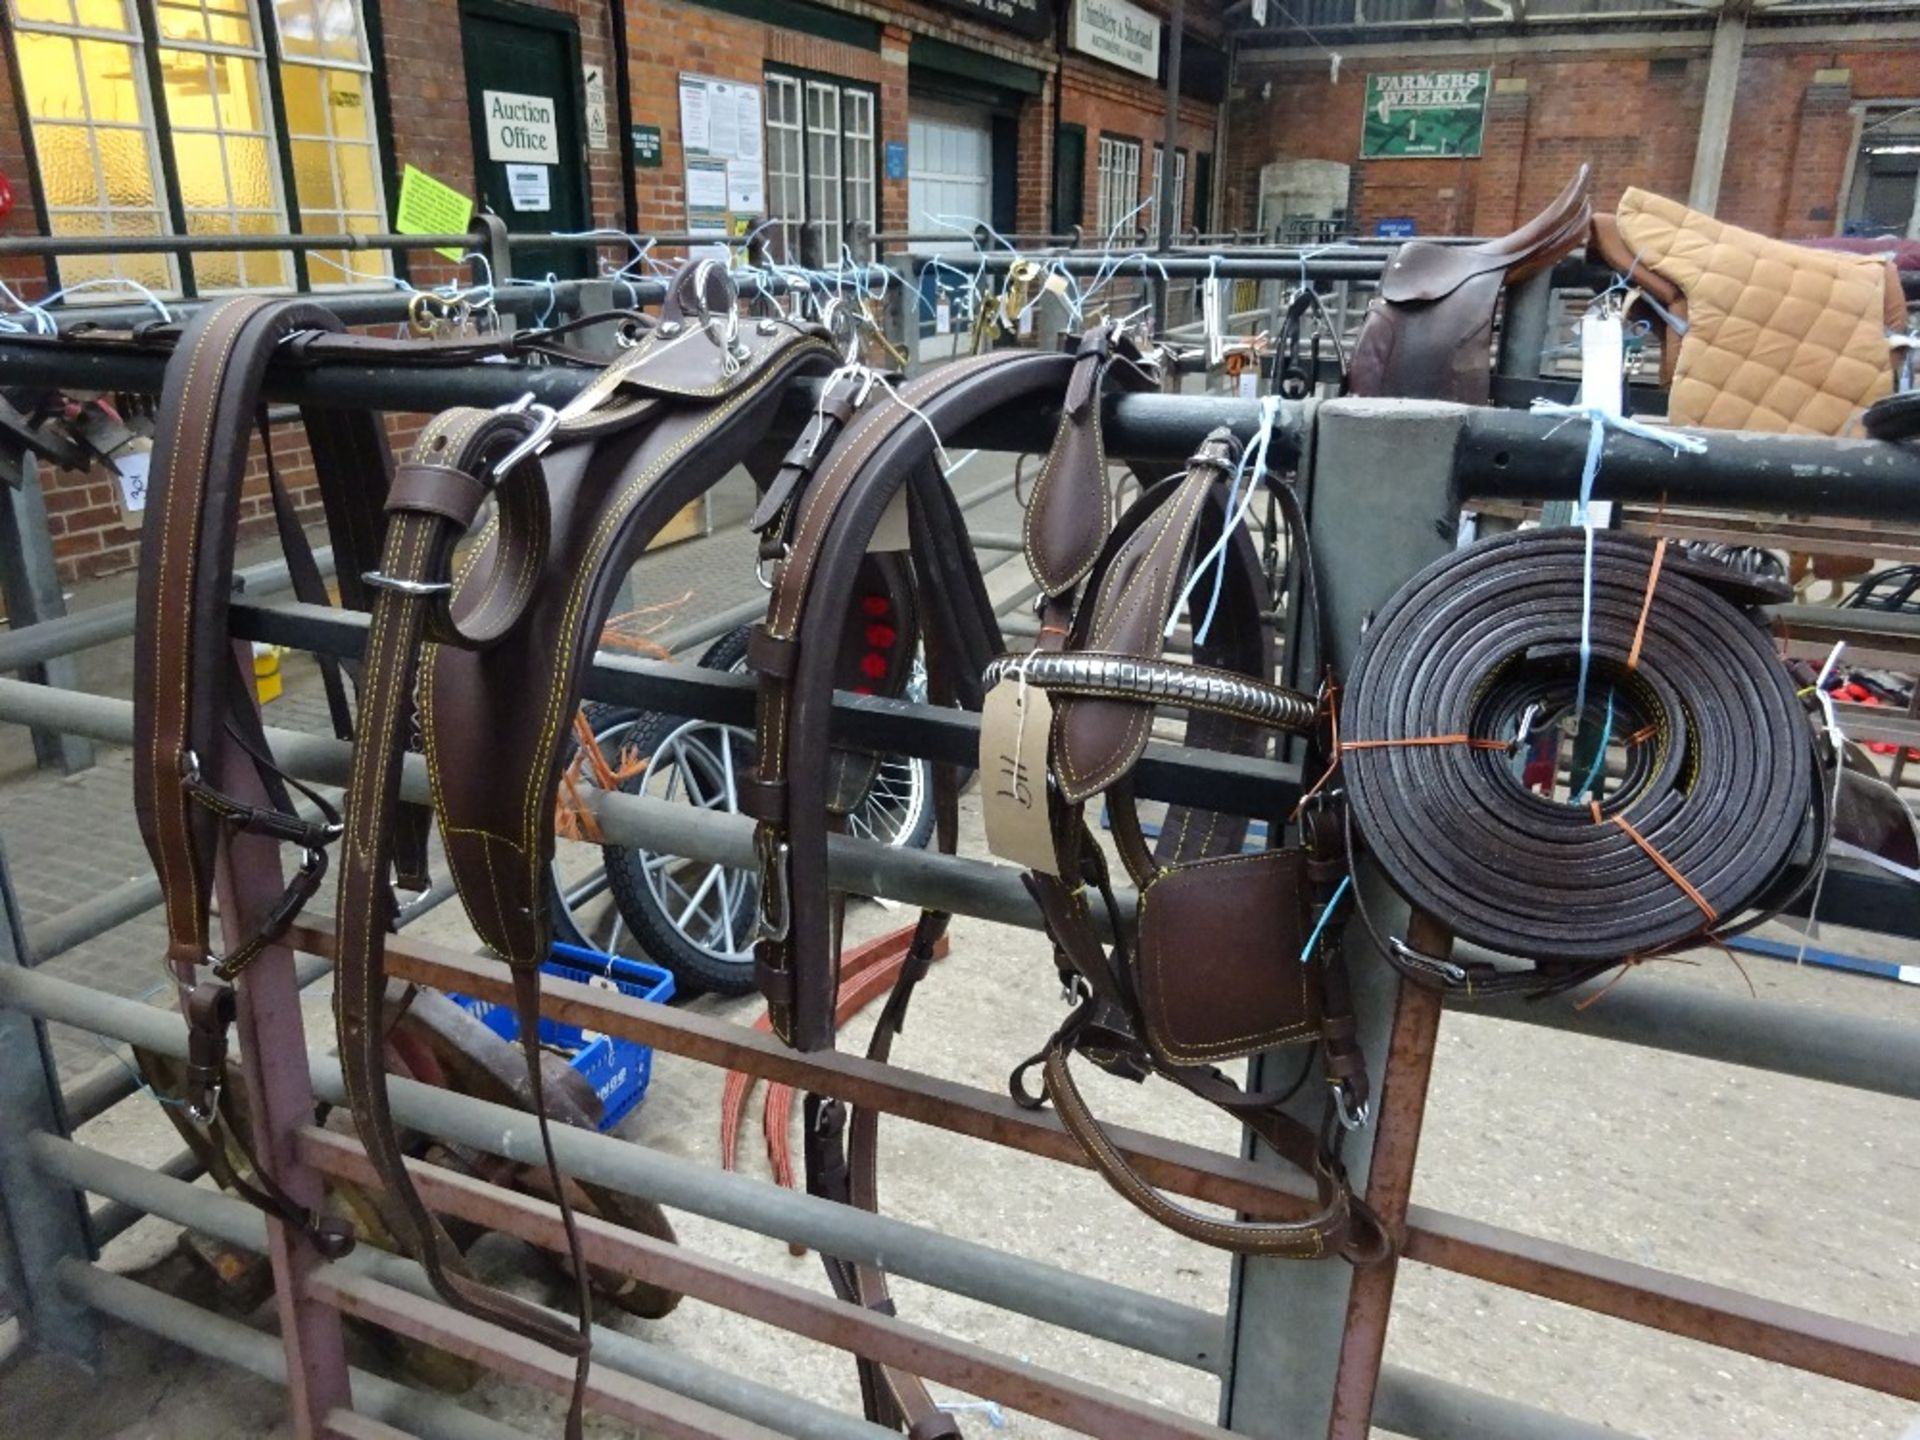 Set of brown/whitemetal breastcollar harness to fit a pony - carries VAT. - Image 2 of 2